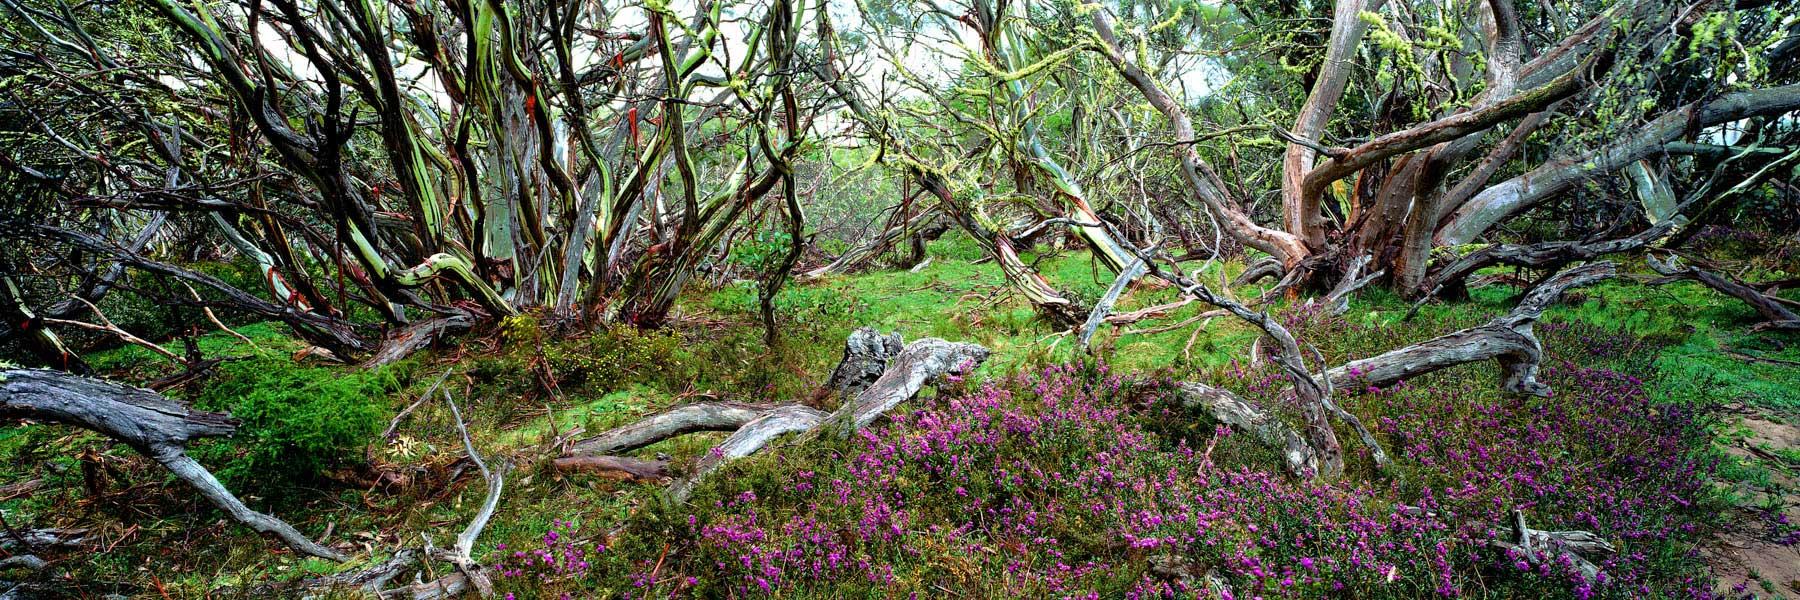 Snow gums and wild flowers in Alpine National Park, Victoria, Australia.